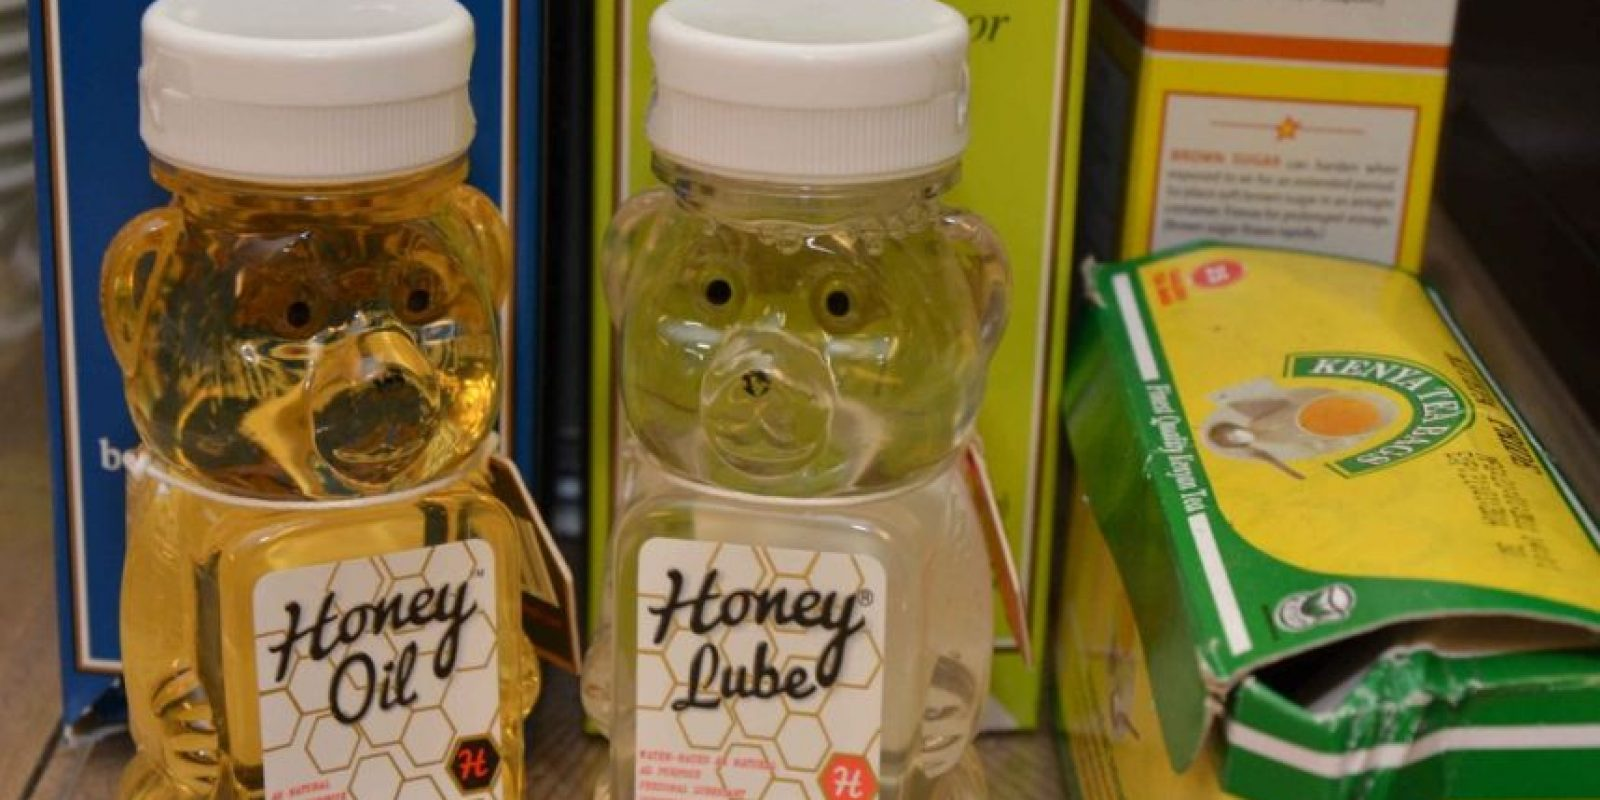 Los lubricantes Honey Oil y Honey Lube se encuentran en el mercado por 13 y 15 dólares Foto: SexToys